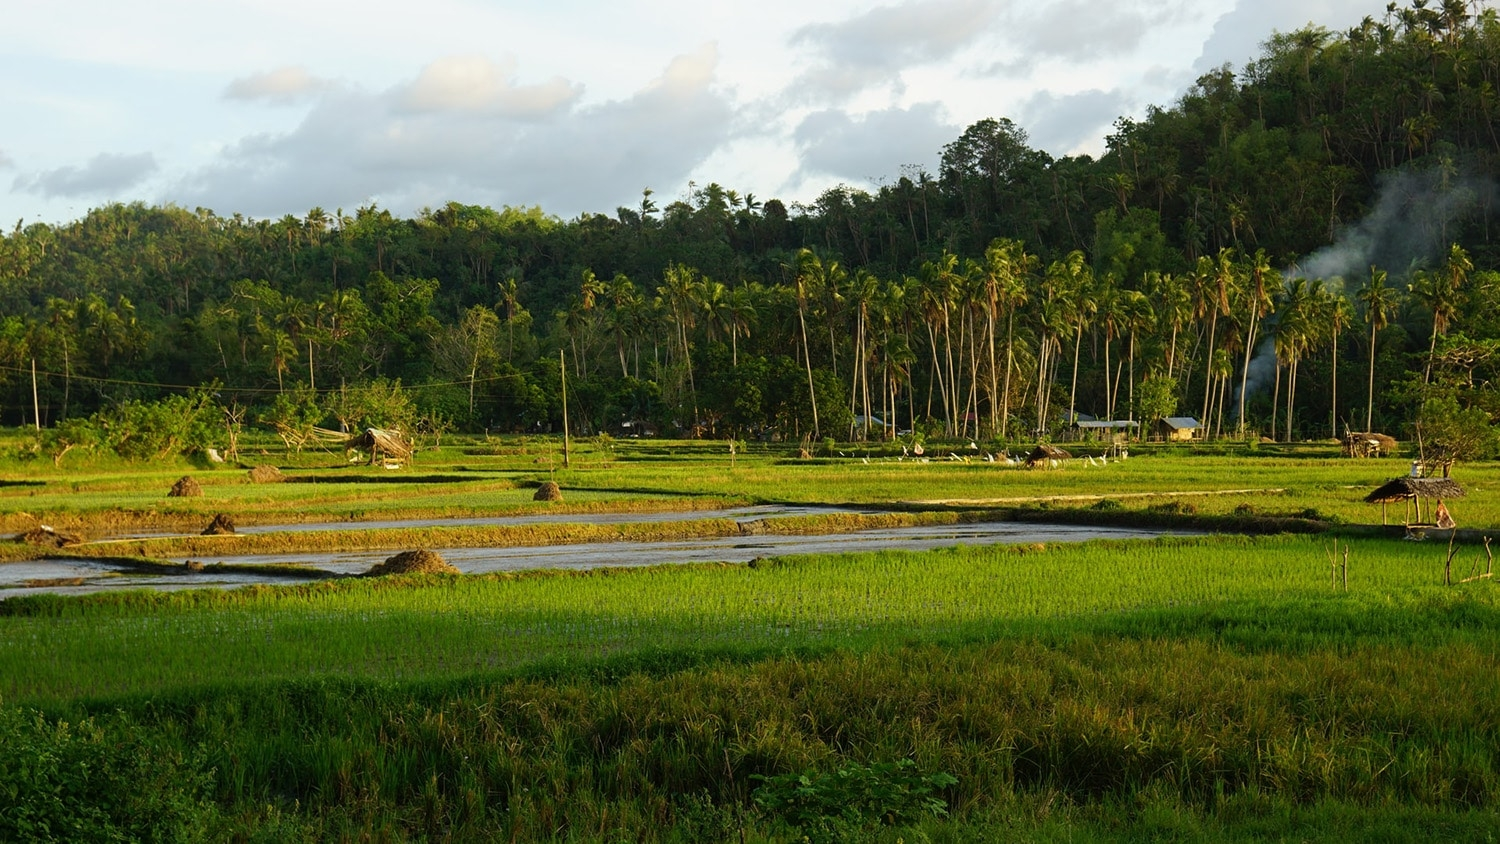 A rice field in the Philippines.